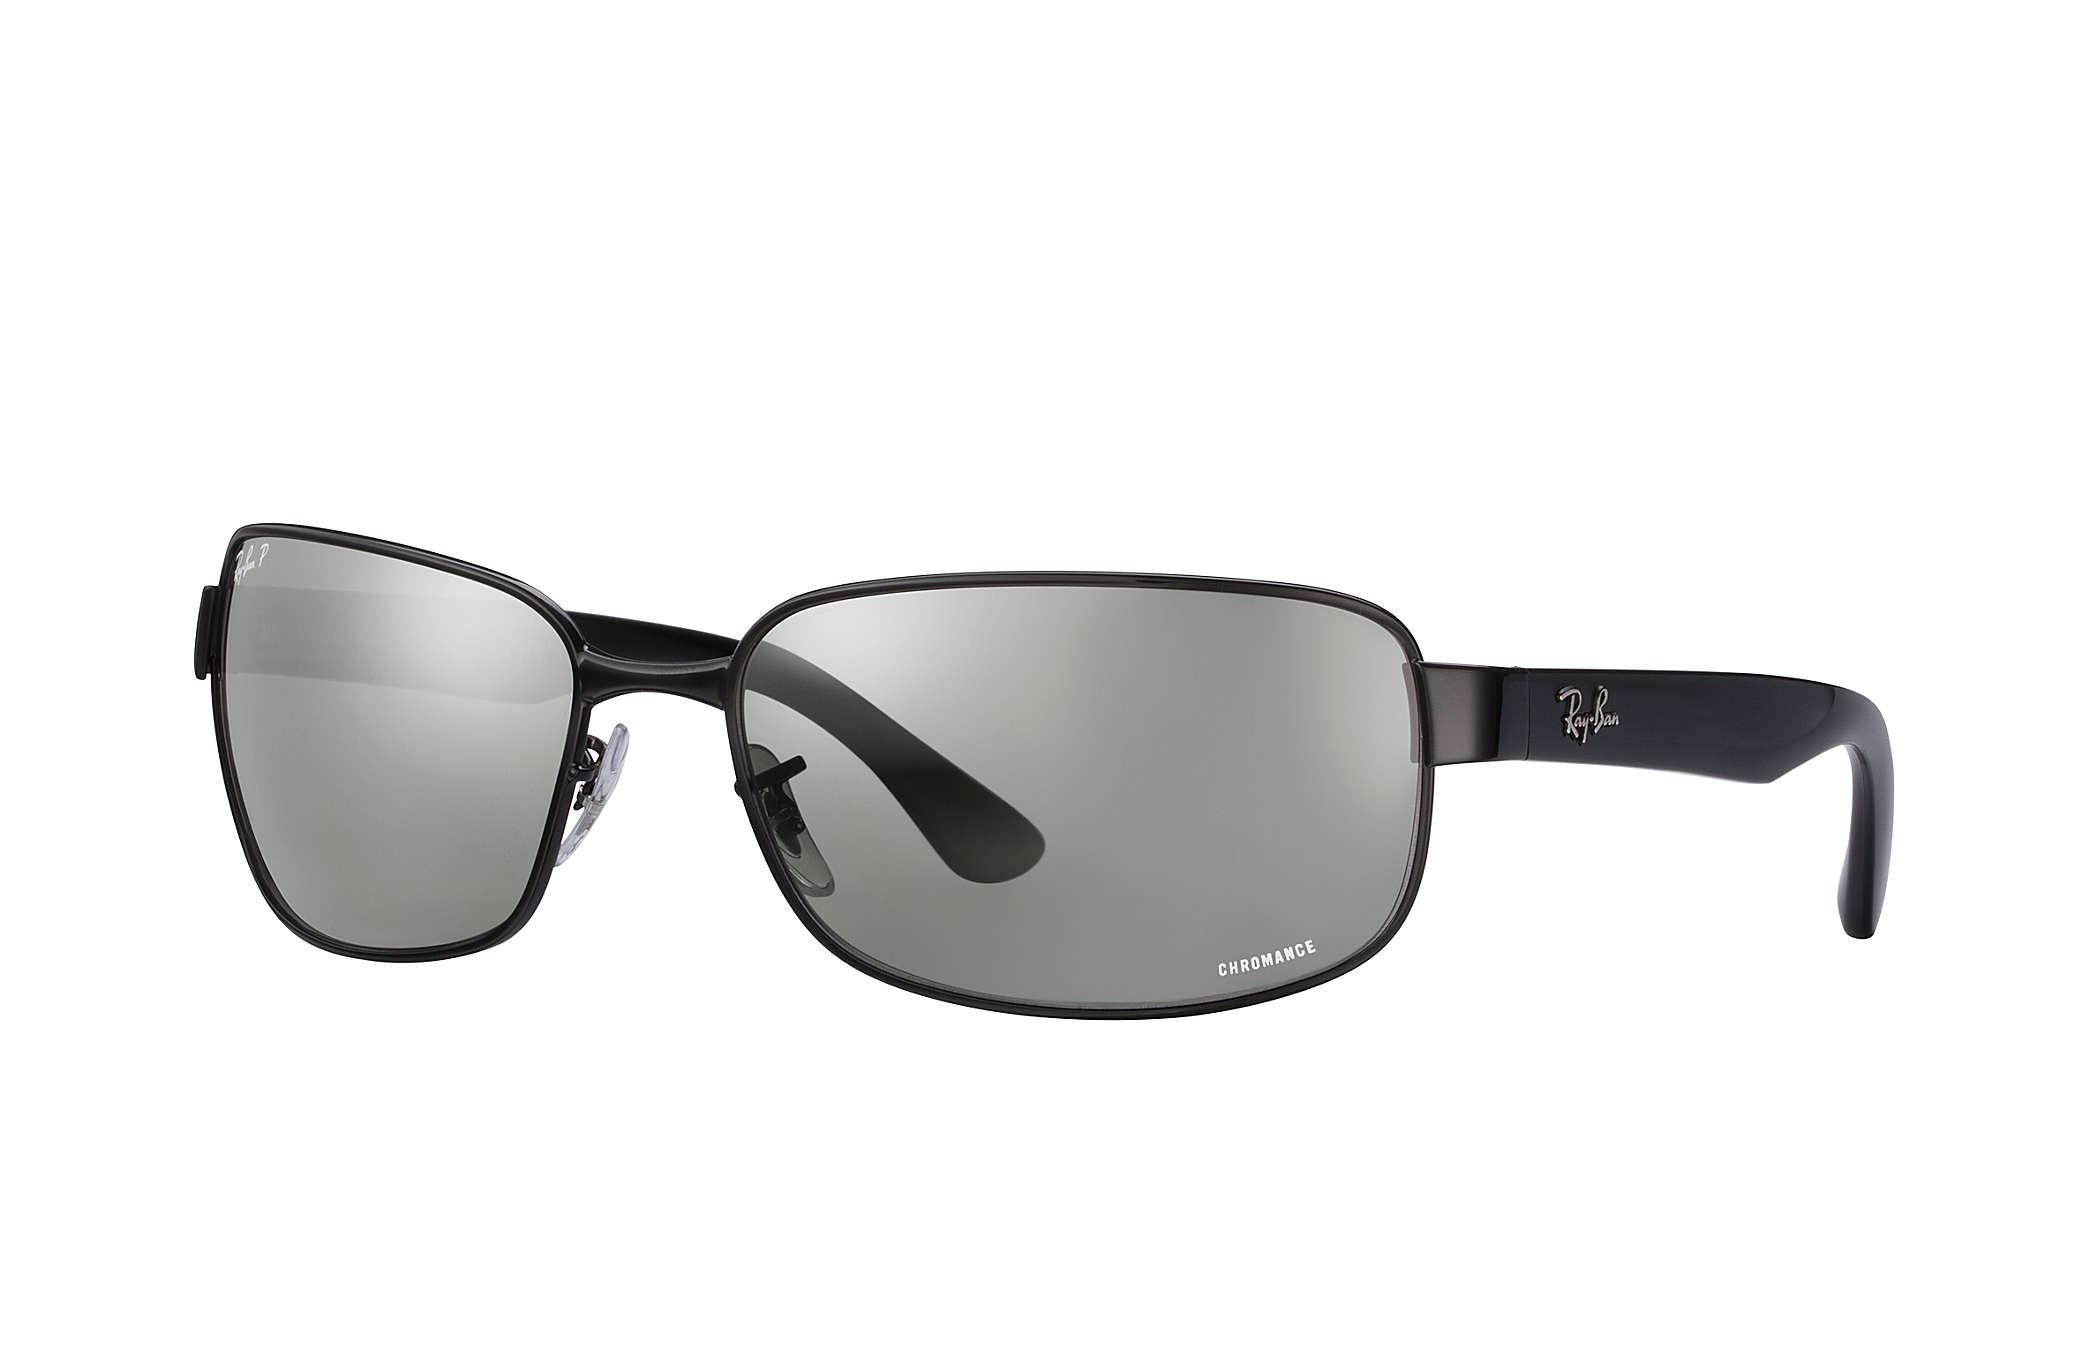 8b0b28b94b4 Ray-Ban Rb3566 Chromance in Black for Men - Lyst